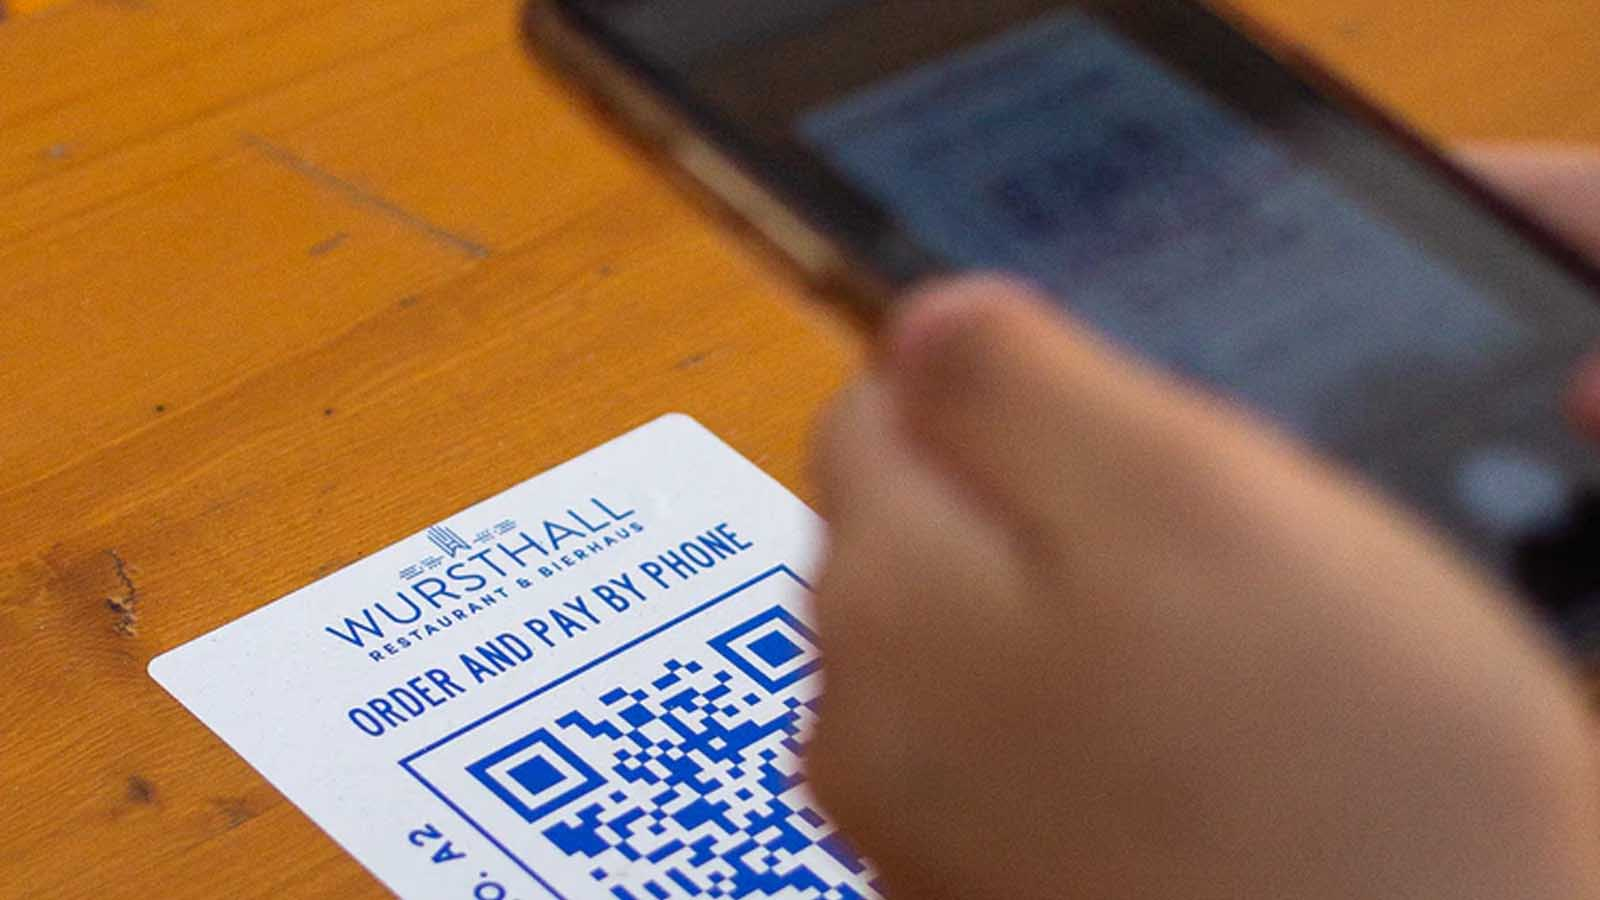 restaurant qr codes on android